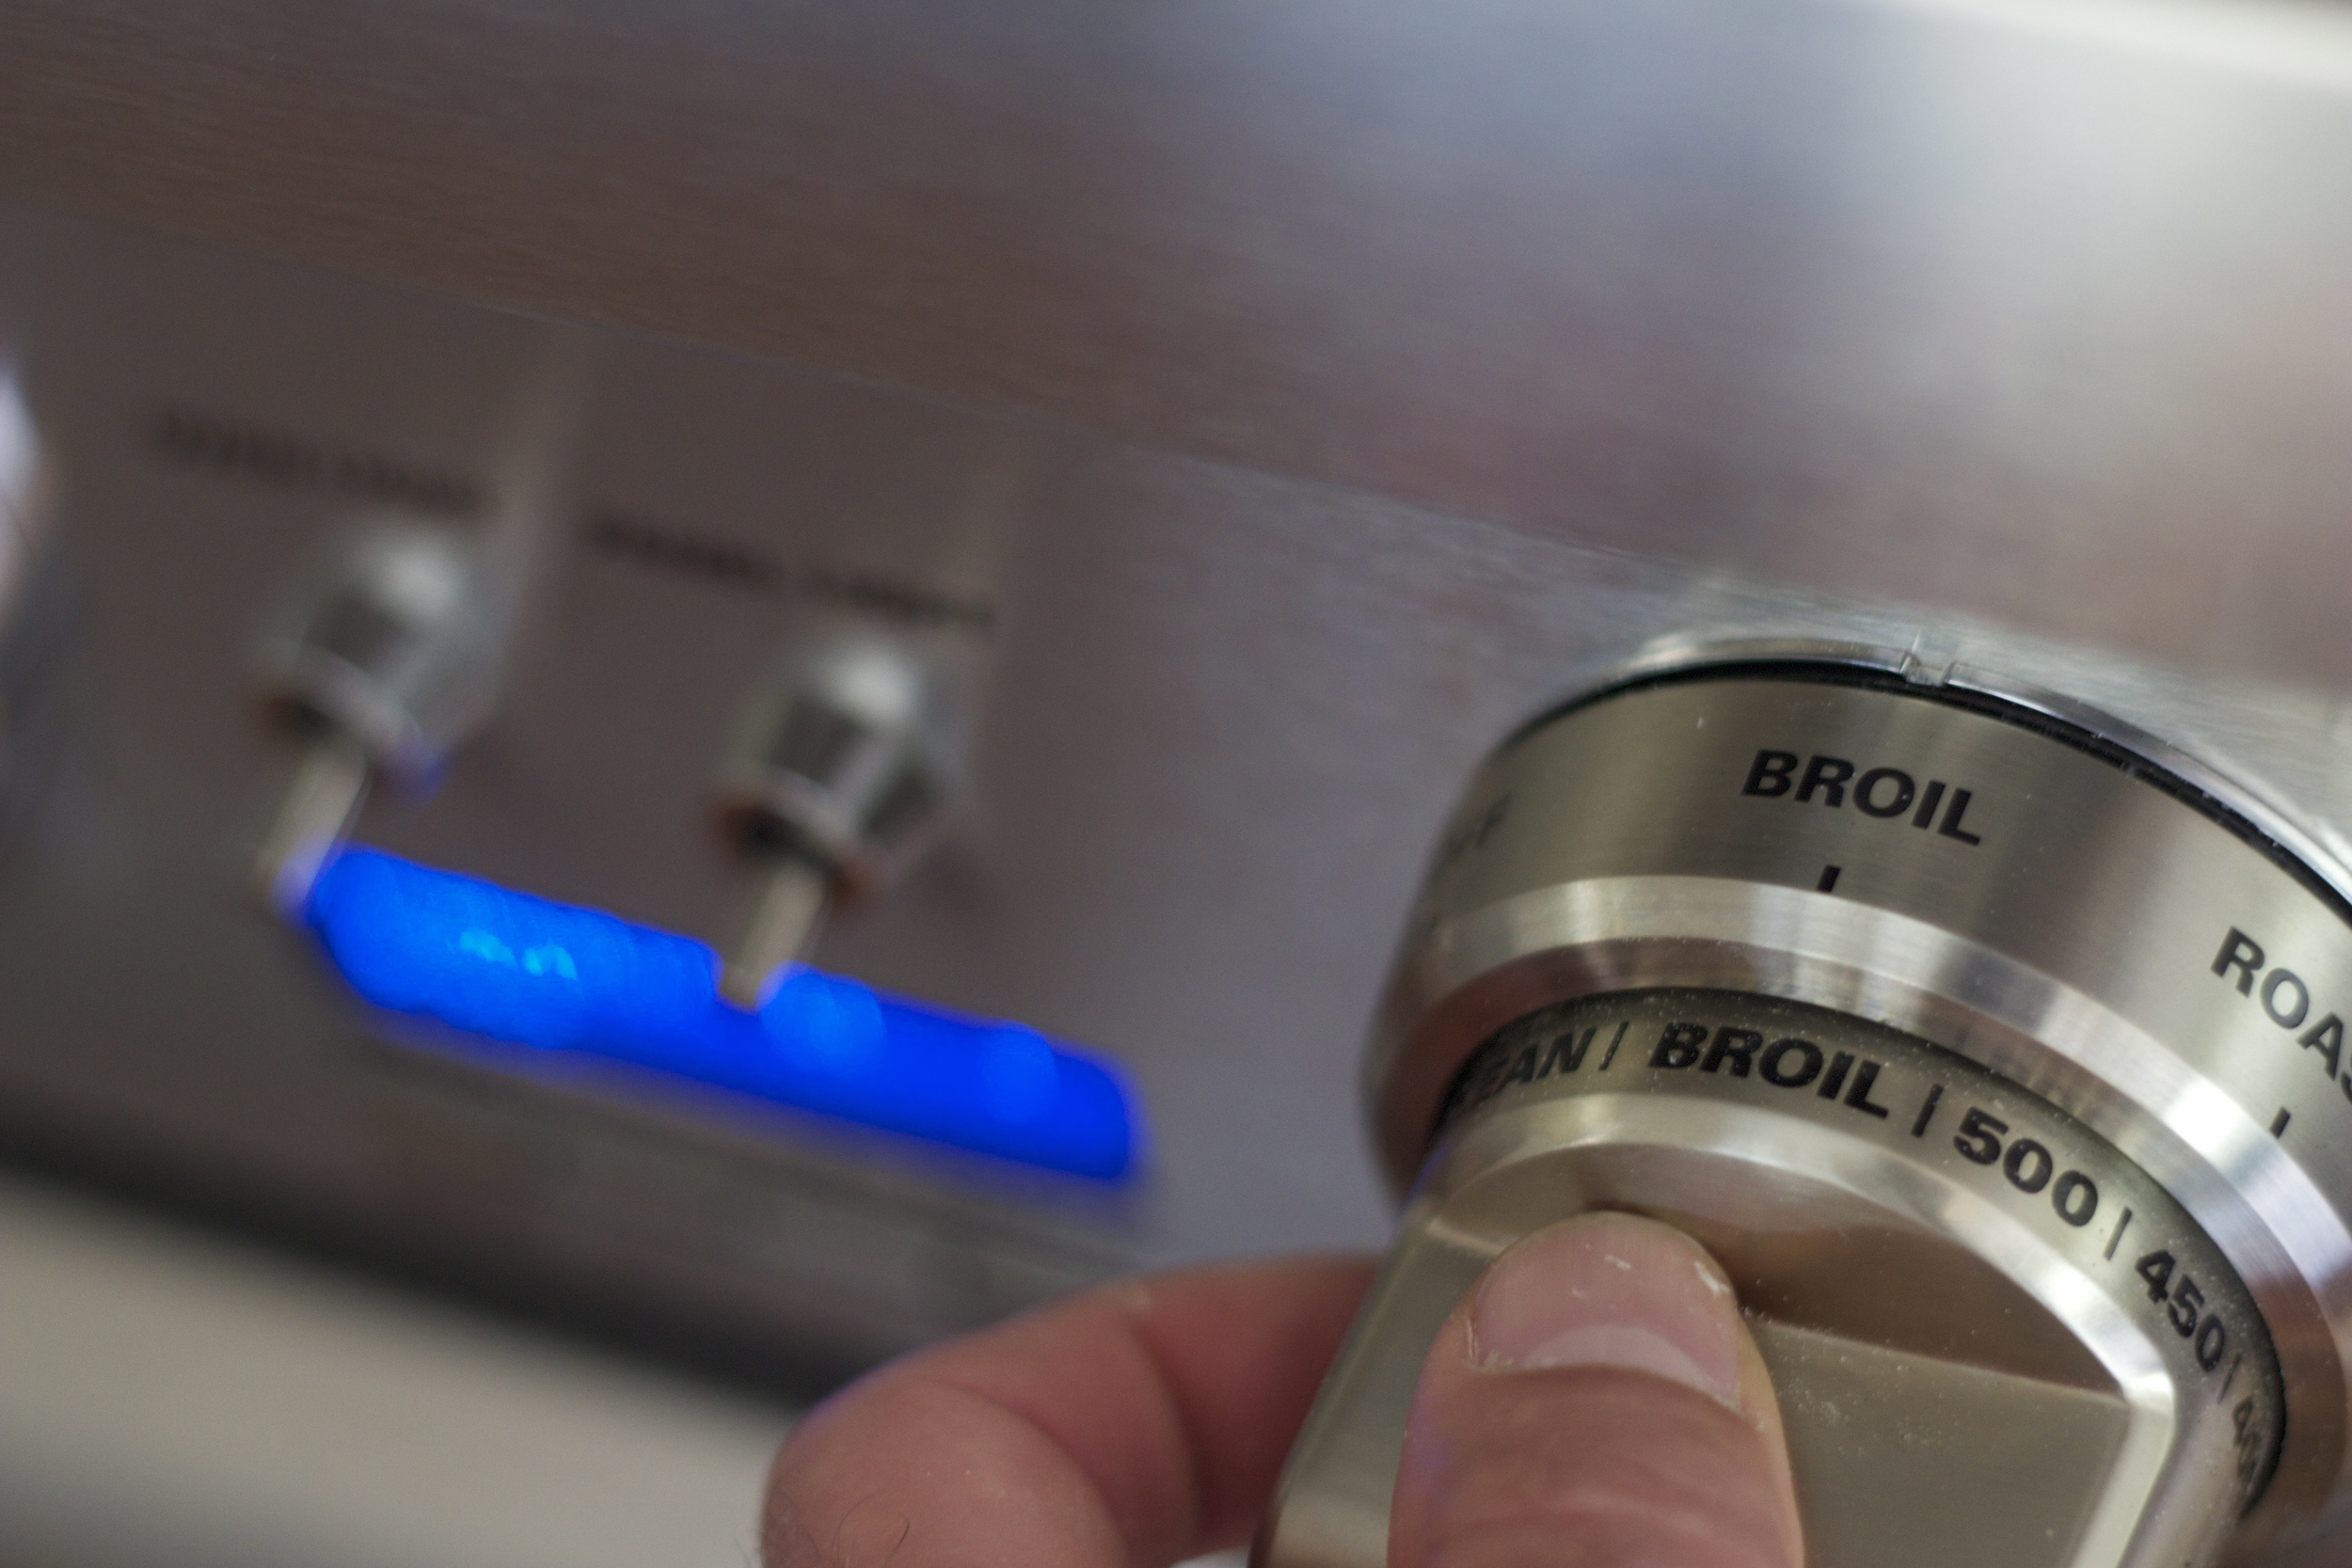 turn the dial to broil